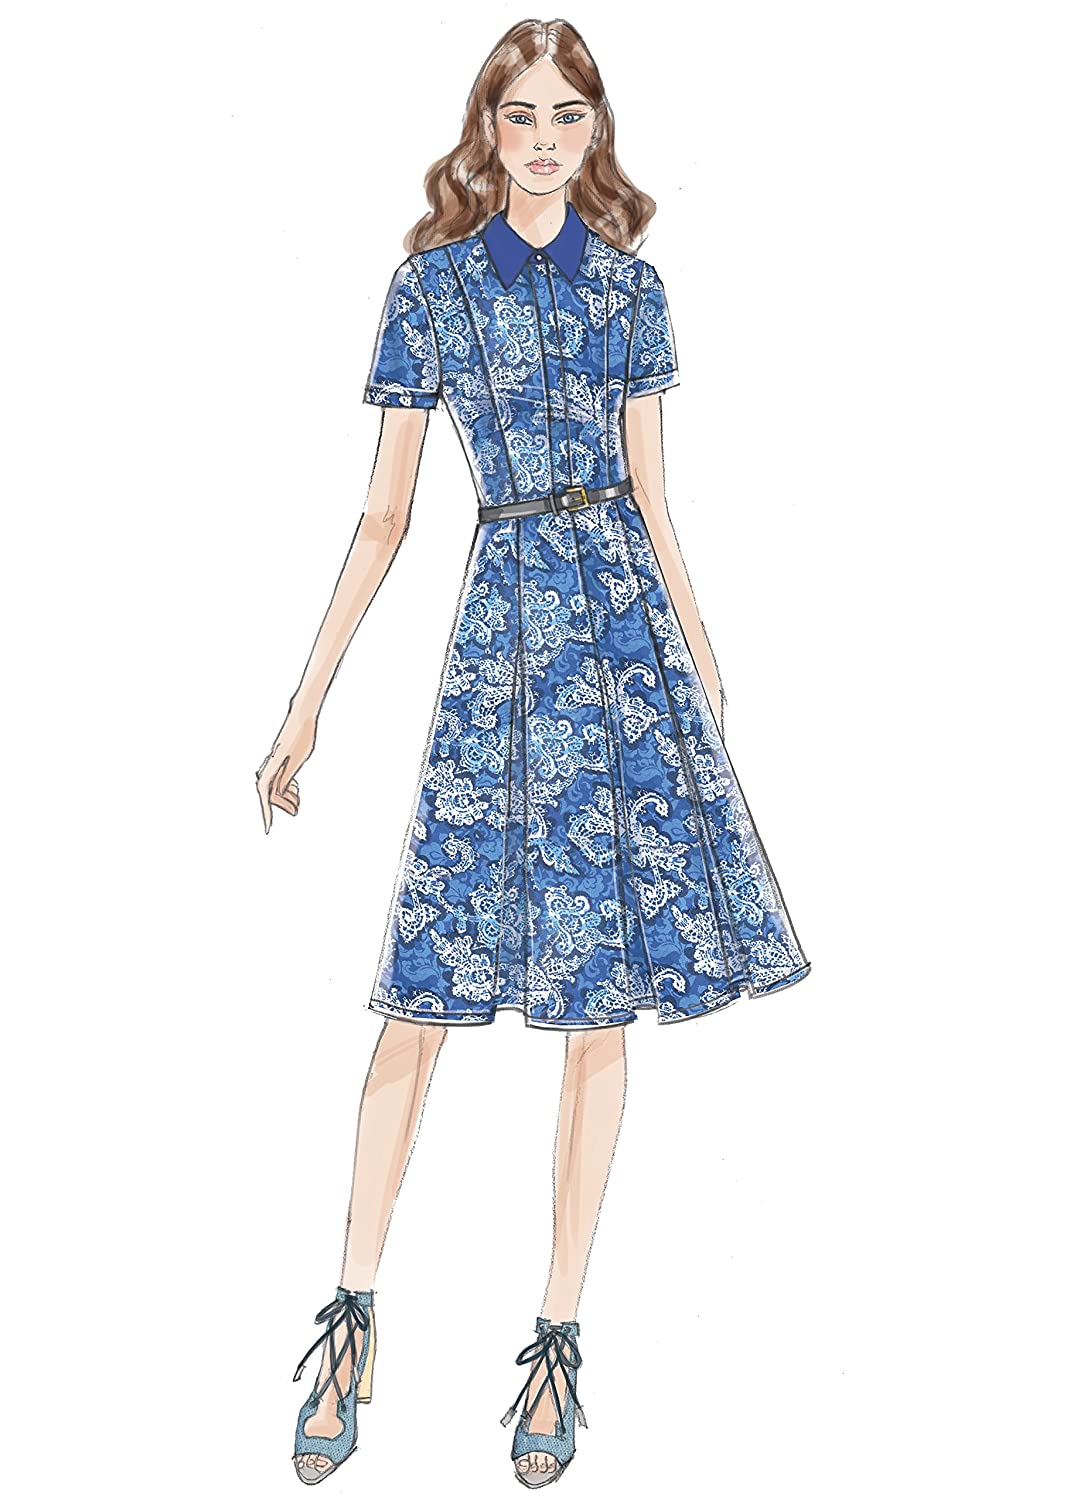 / 14 Vogue Patterns 9201/ A5/ Misses//Petite Dress Taglie 6/  Tessuto Multicolore